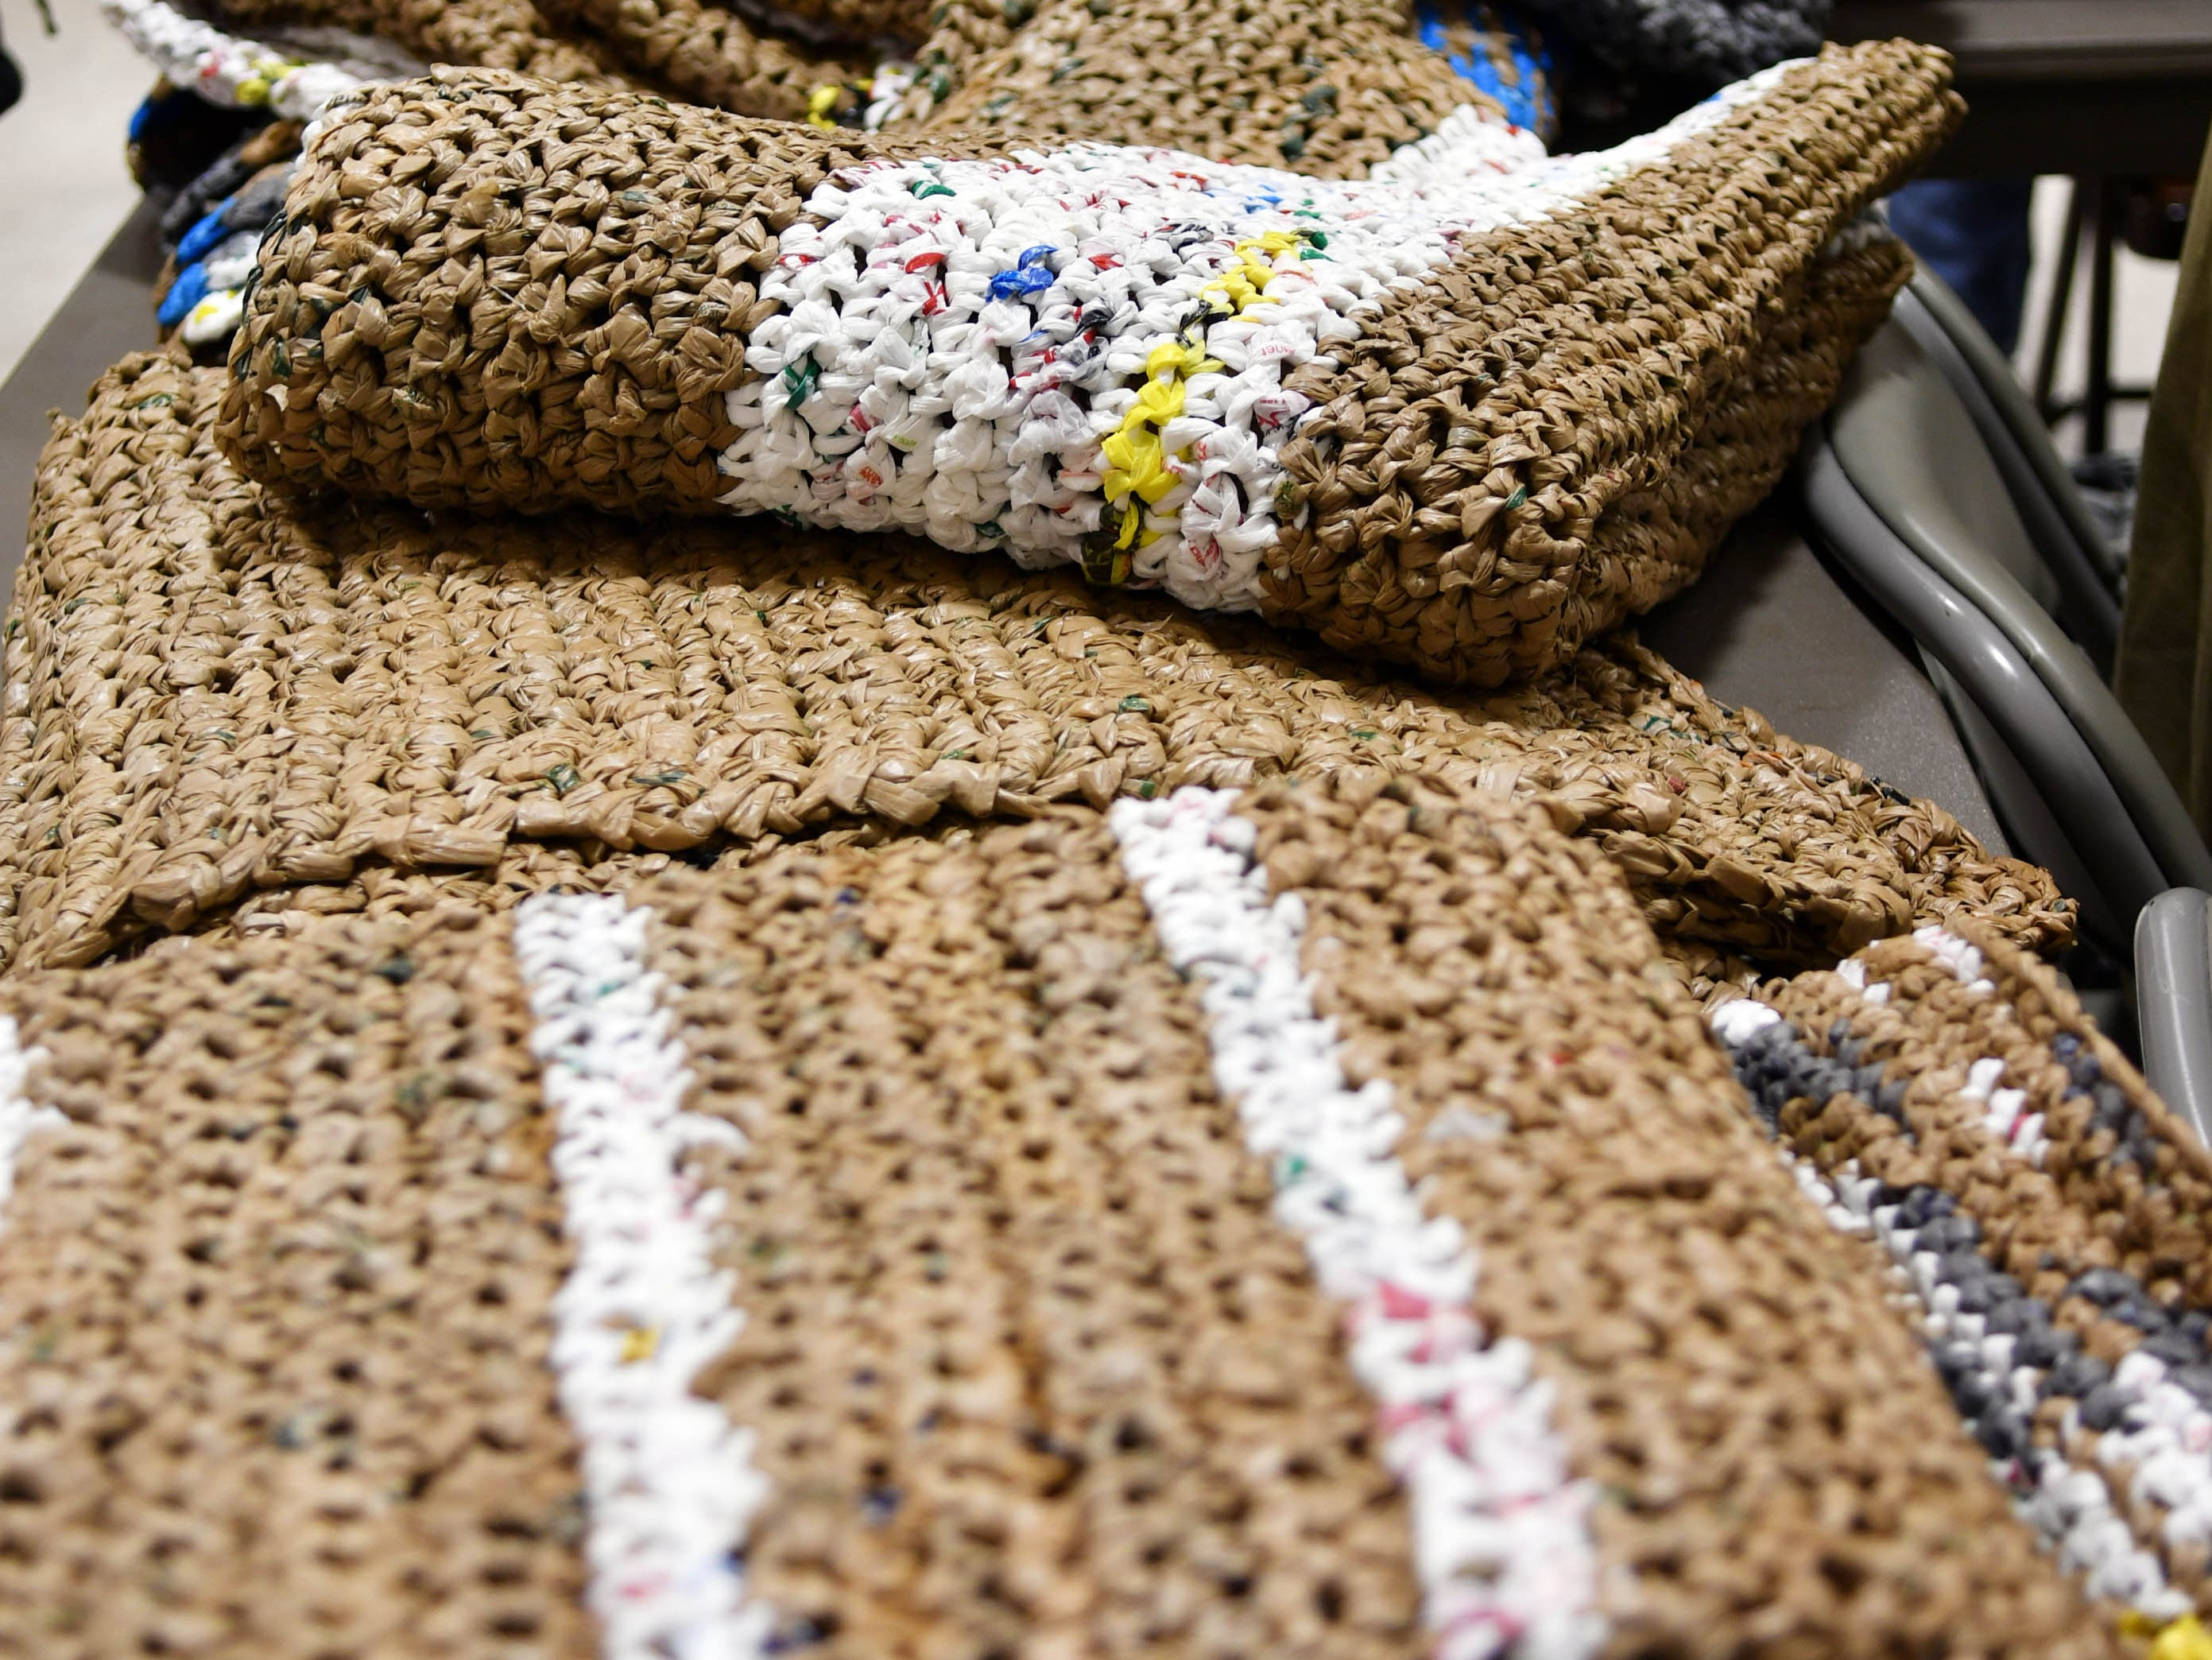 Ground mats made from recycled plastic bags await distribution during Saturday's Stand Down for Veterans at Cocoa Armory.